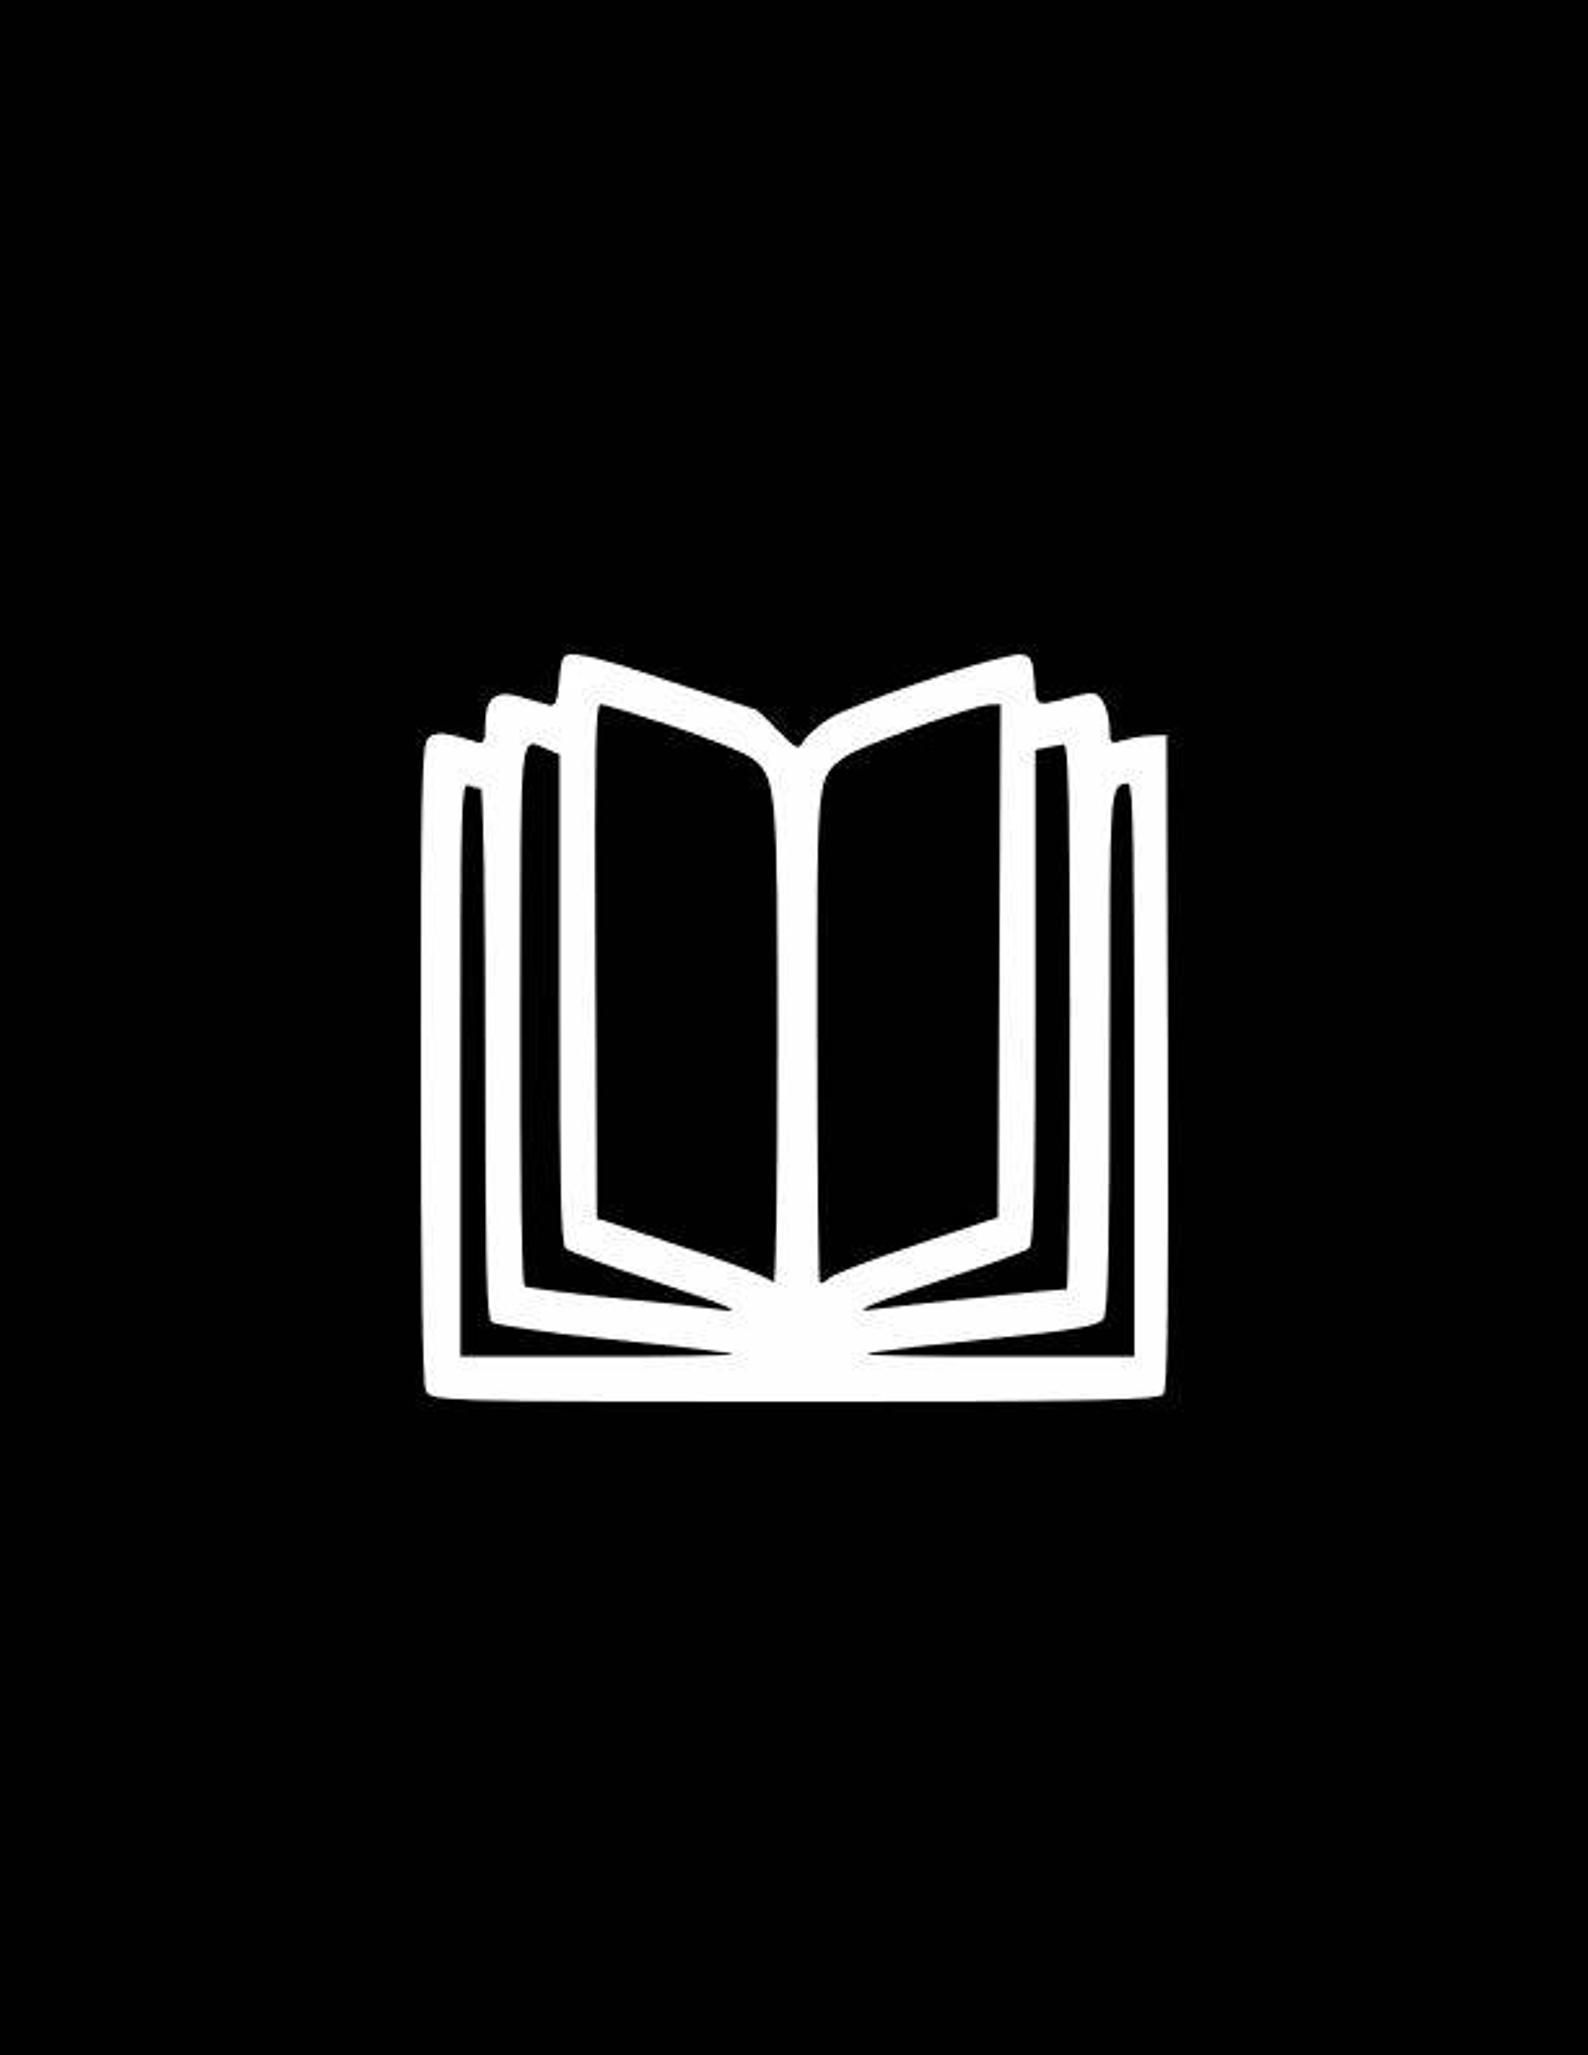 Open Book Book Lover Decal Laptop Decalcar Decalgifts For Etsy In 2020 Black And White Instagram Instagram Highlight Icons Book Icons